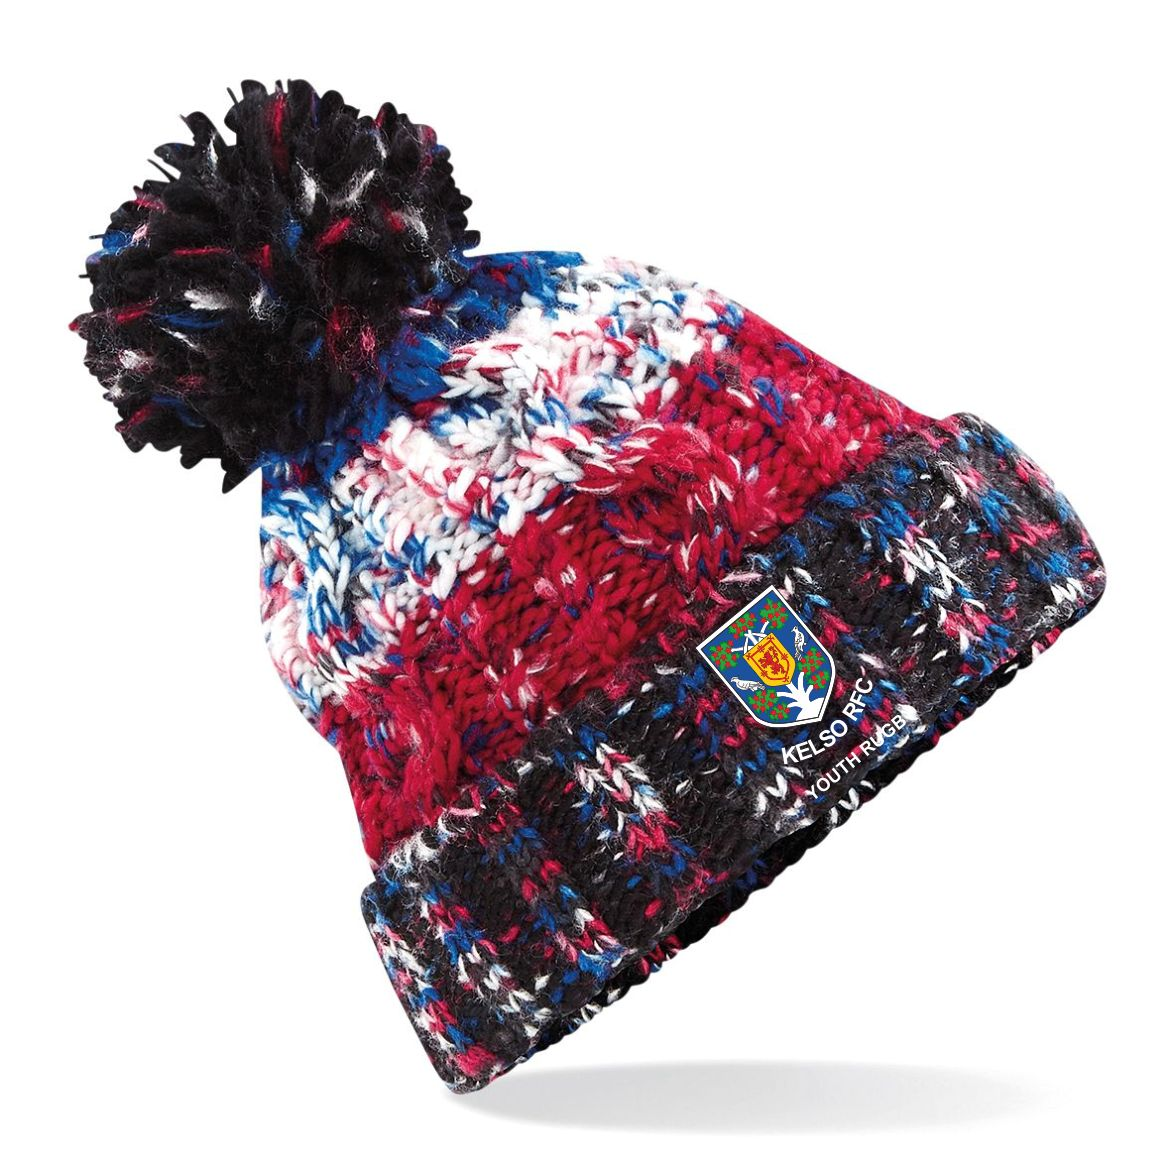 Kelso RFC Youth Rugby Corkscrew Bobble hat